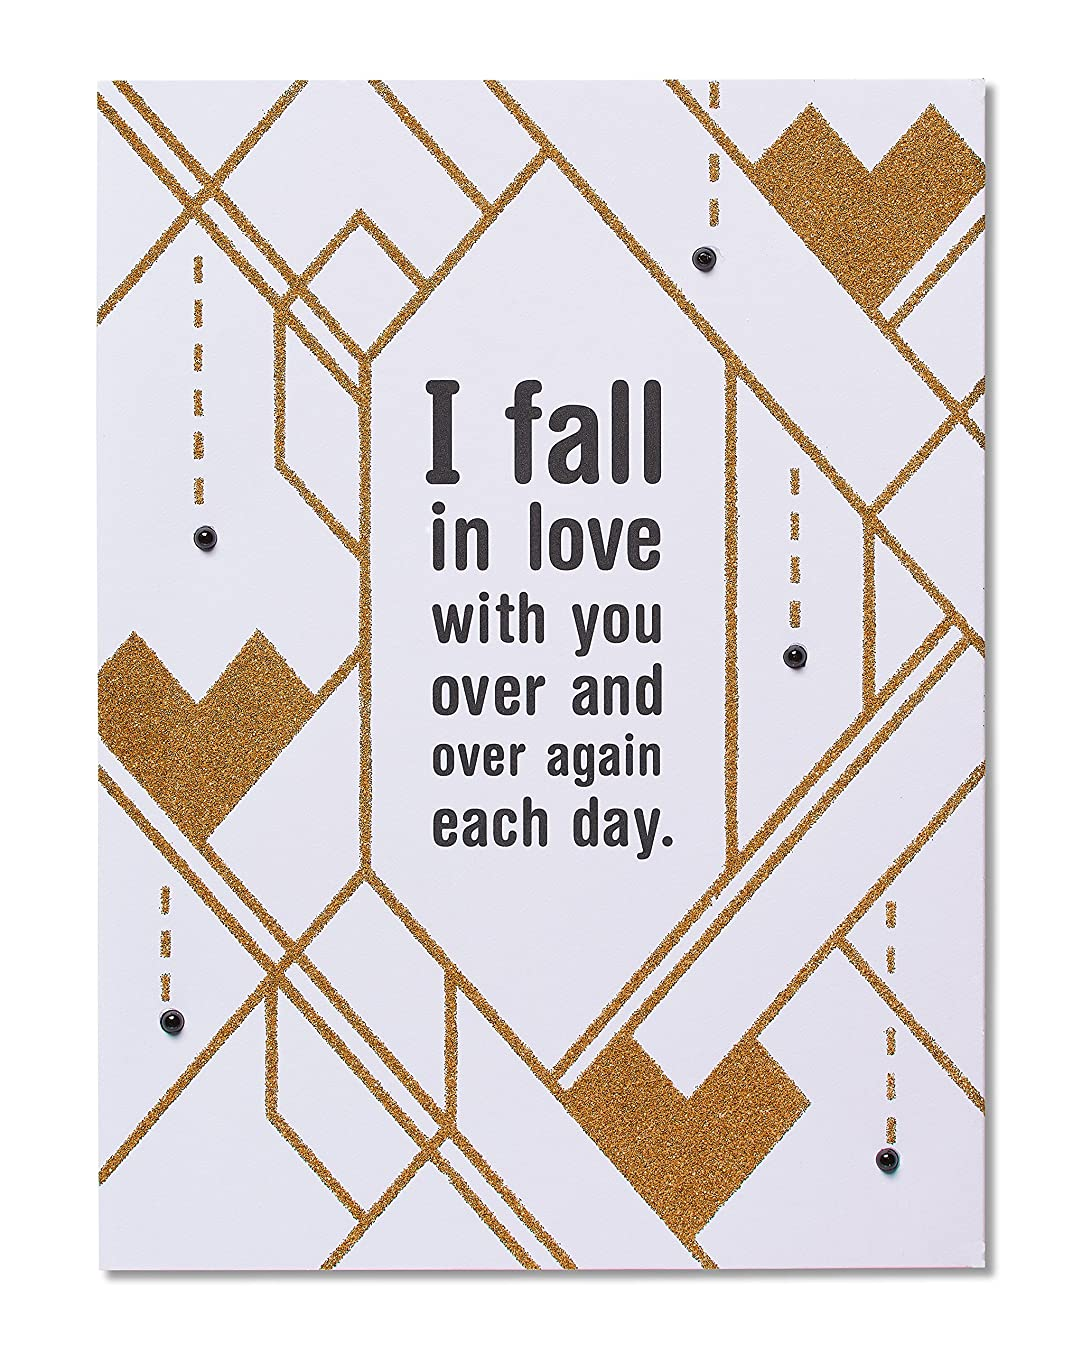 American Greetings Funny Exhausted Romantic Card with Glitter - 5856795